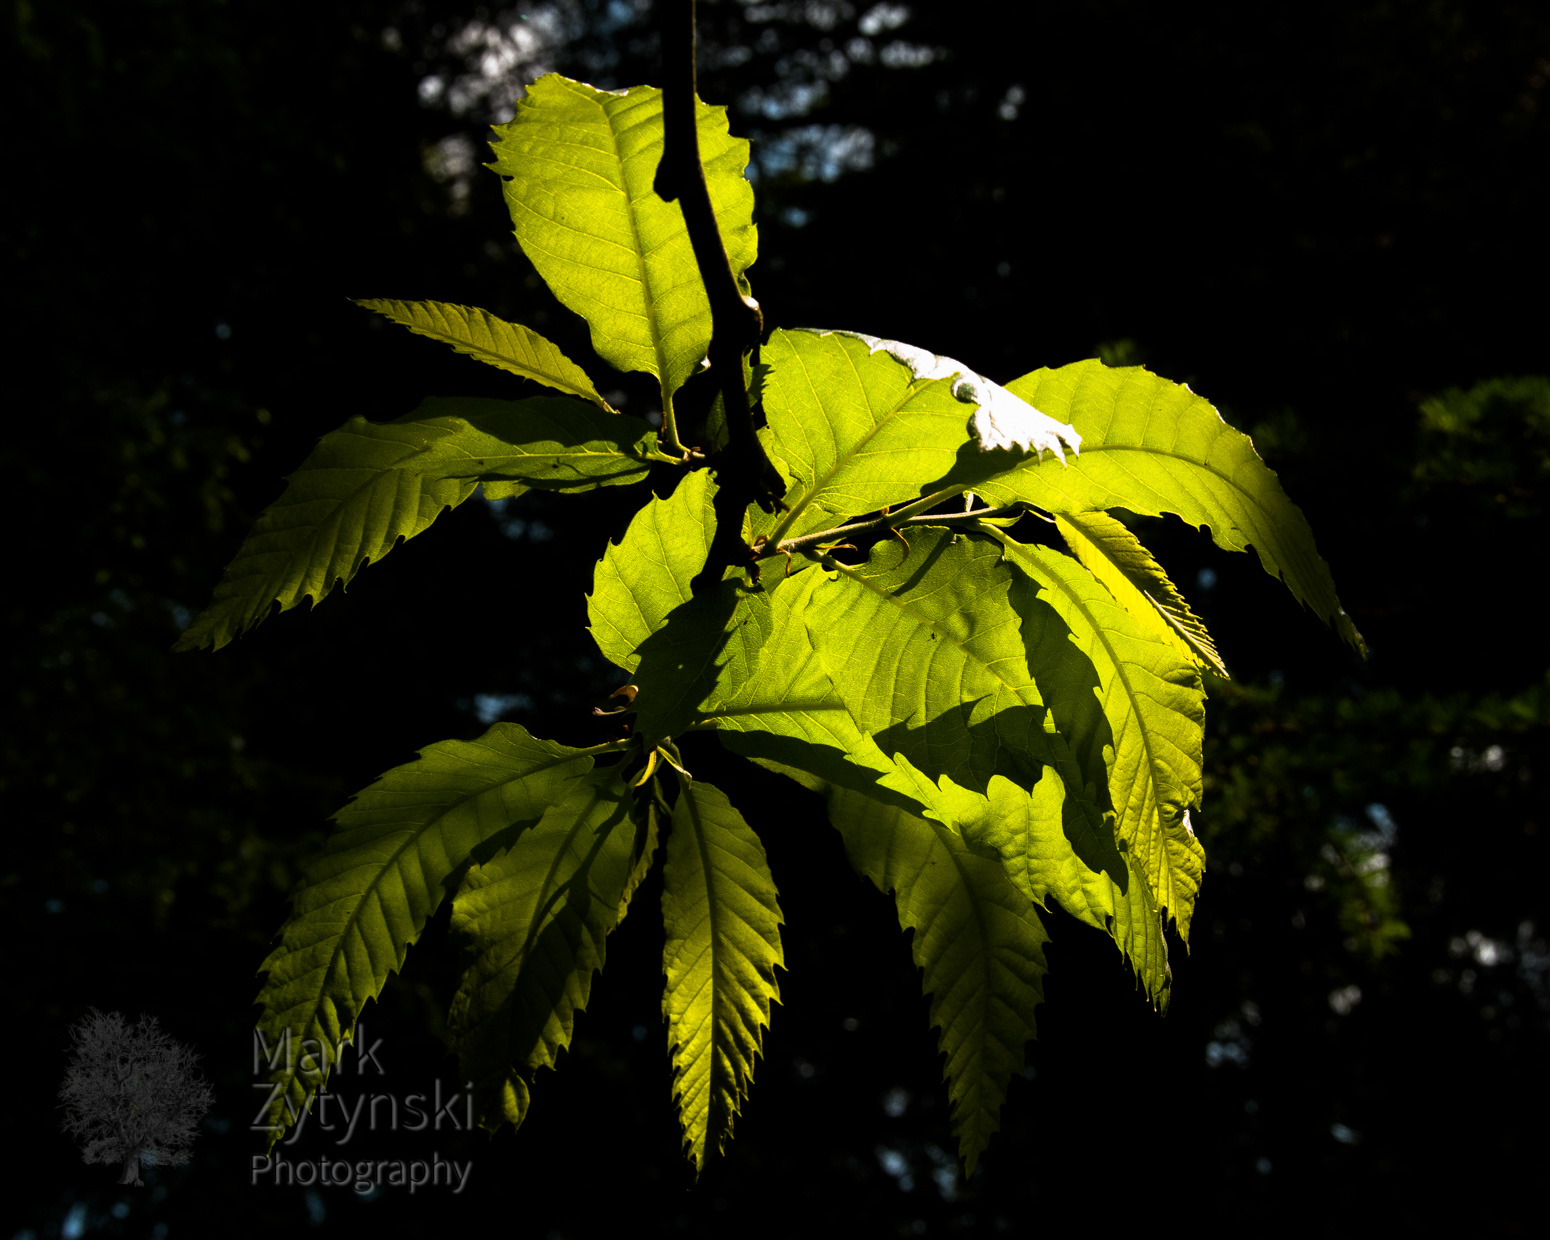 Sunlit Chestnut Leaves